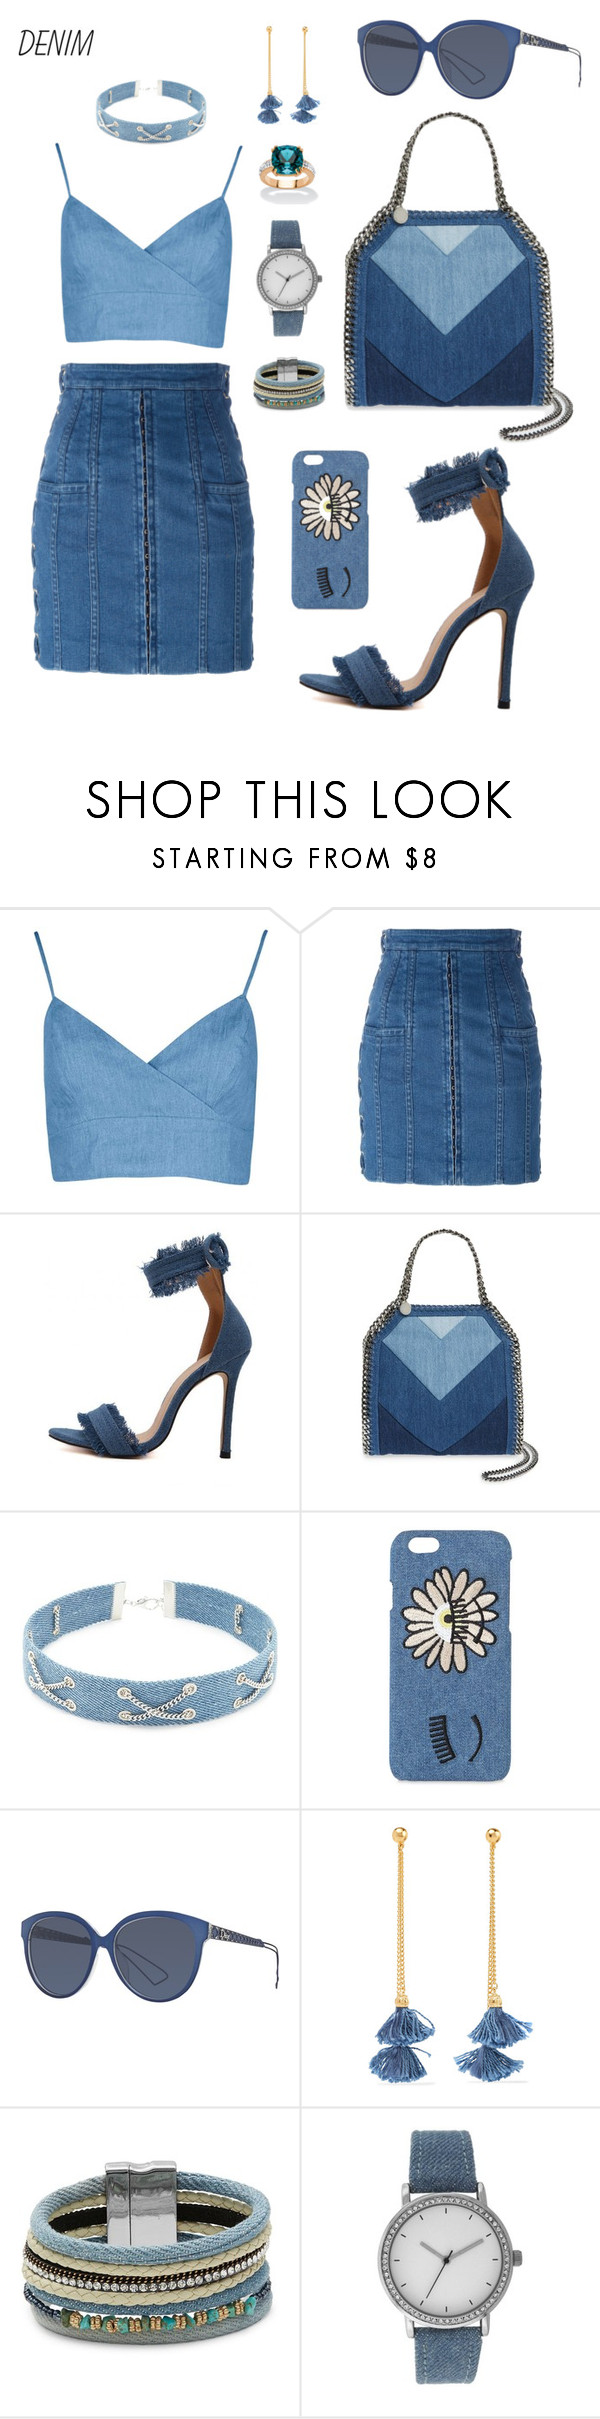 """""""53"""" by jokedin ❤ liked on Polyvore featuring Balmain, STELLA McCARTNEY, Forever 21, Chiara Ferragni, Christian Dior, Ben-Amun, Cara, A Classic Time Watch Co. and Palm Beach Jewelry"""